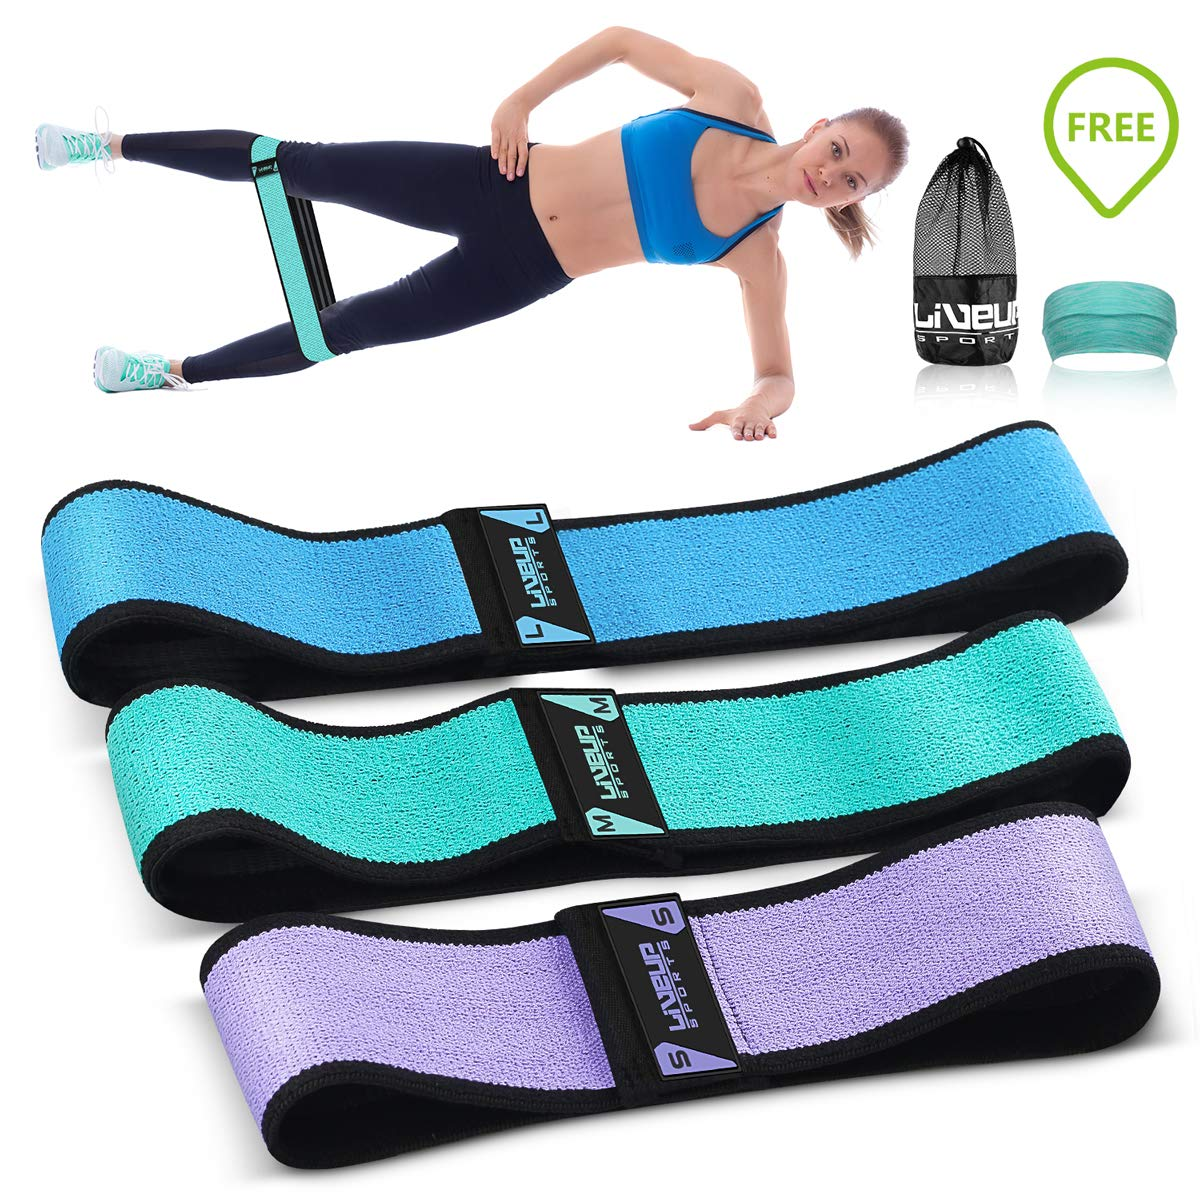 Hip Bands for Booty Resistance Workout Bands for Legs and Butt Heavy Exercise Loops Gym Bands Perfect Activate Glutes and Thighs Building Beachbody Resistance Set of 3 for Women and Men WEHVKEI